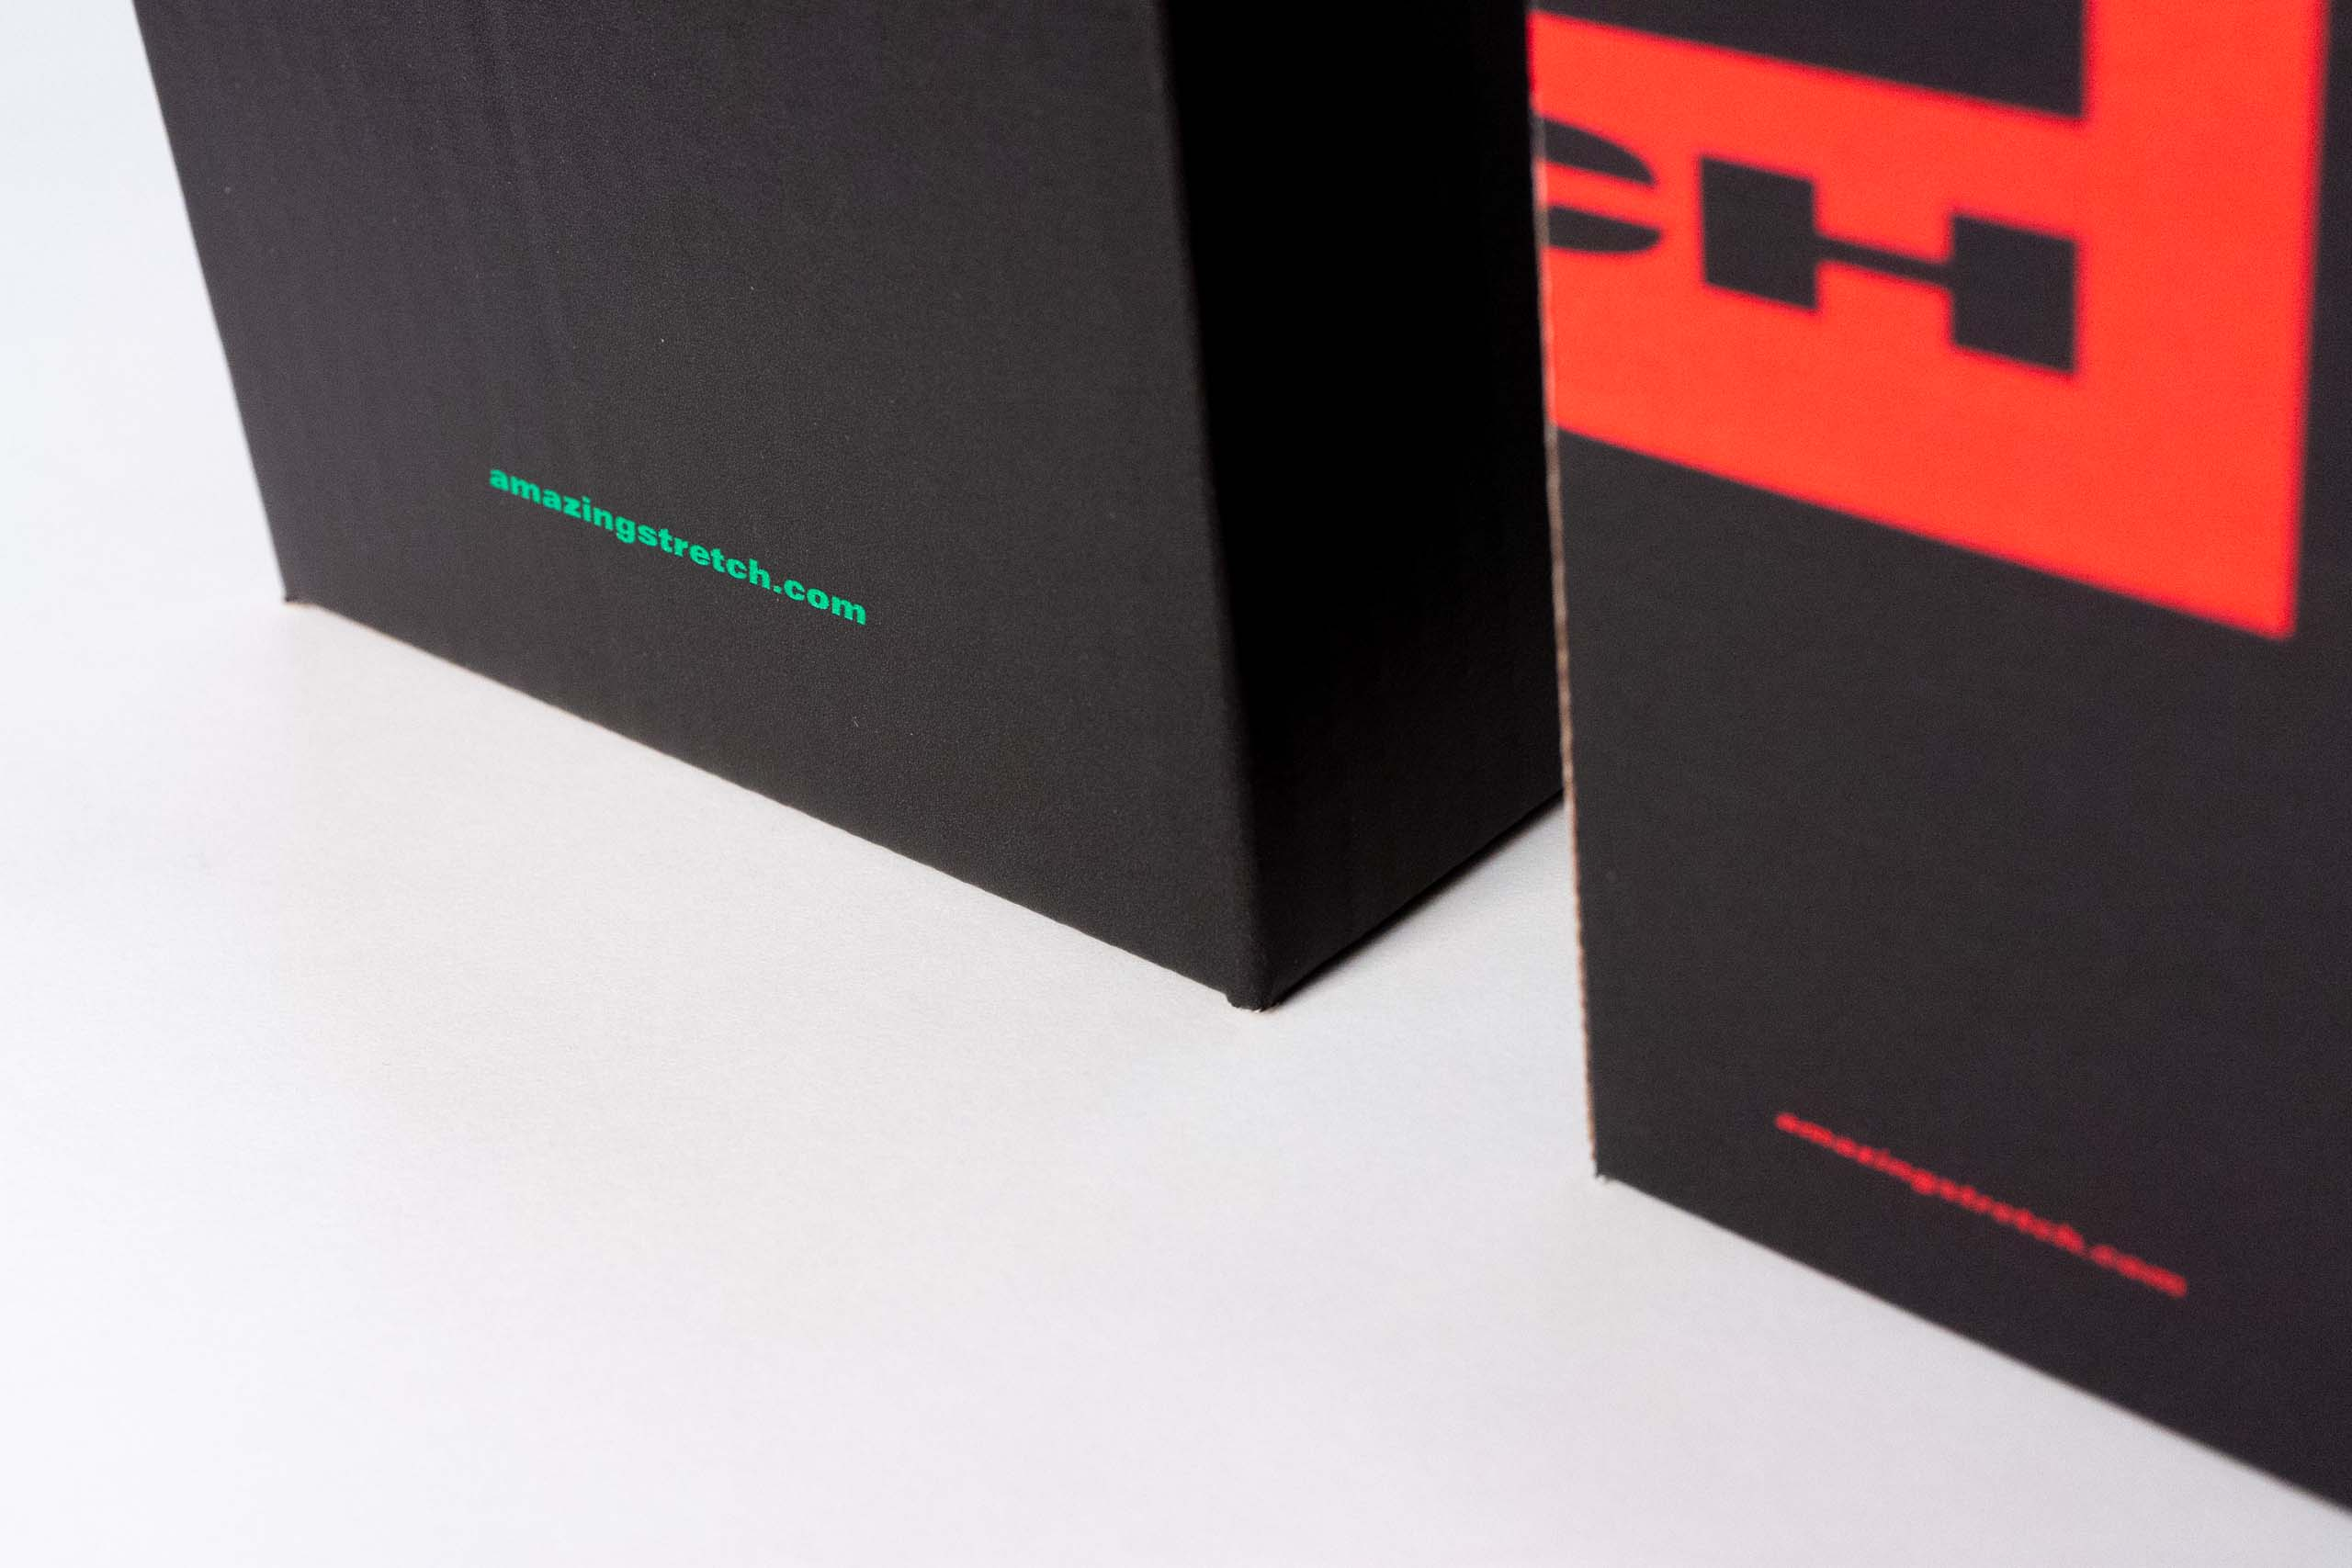 Details of the back of the boxes with company website — by Yagnyuk.